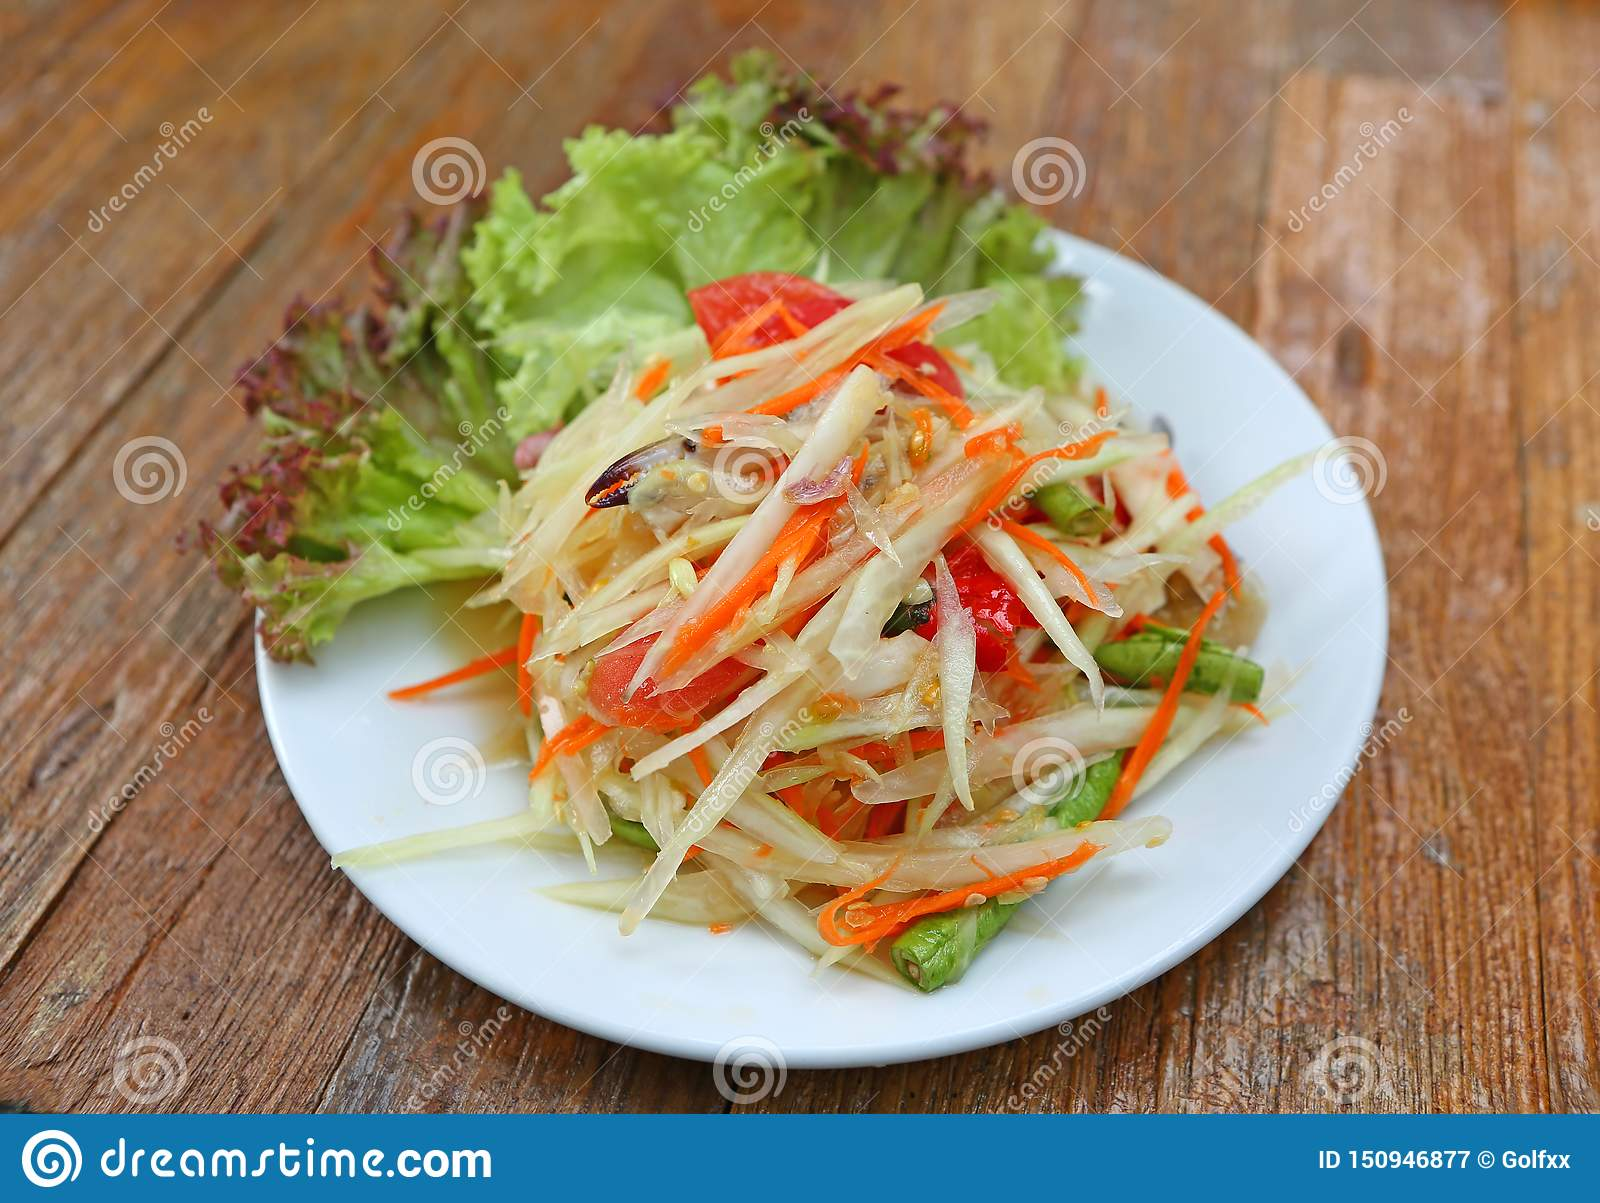 Papaya salad with crab in white plate on wood table